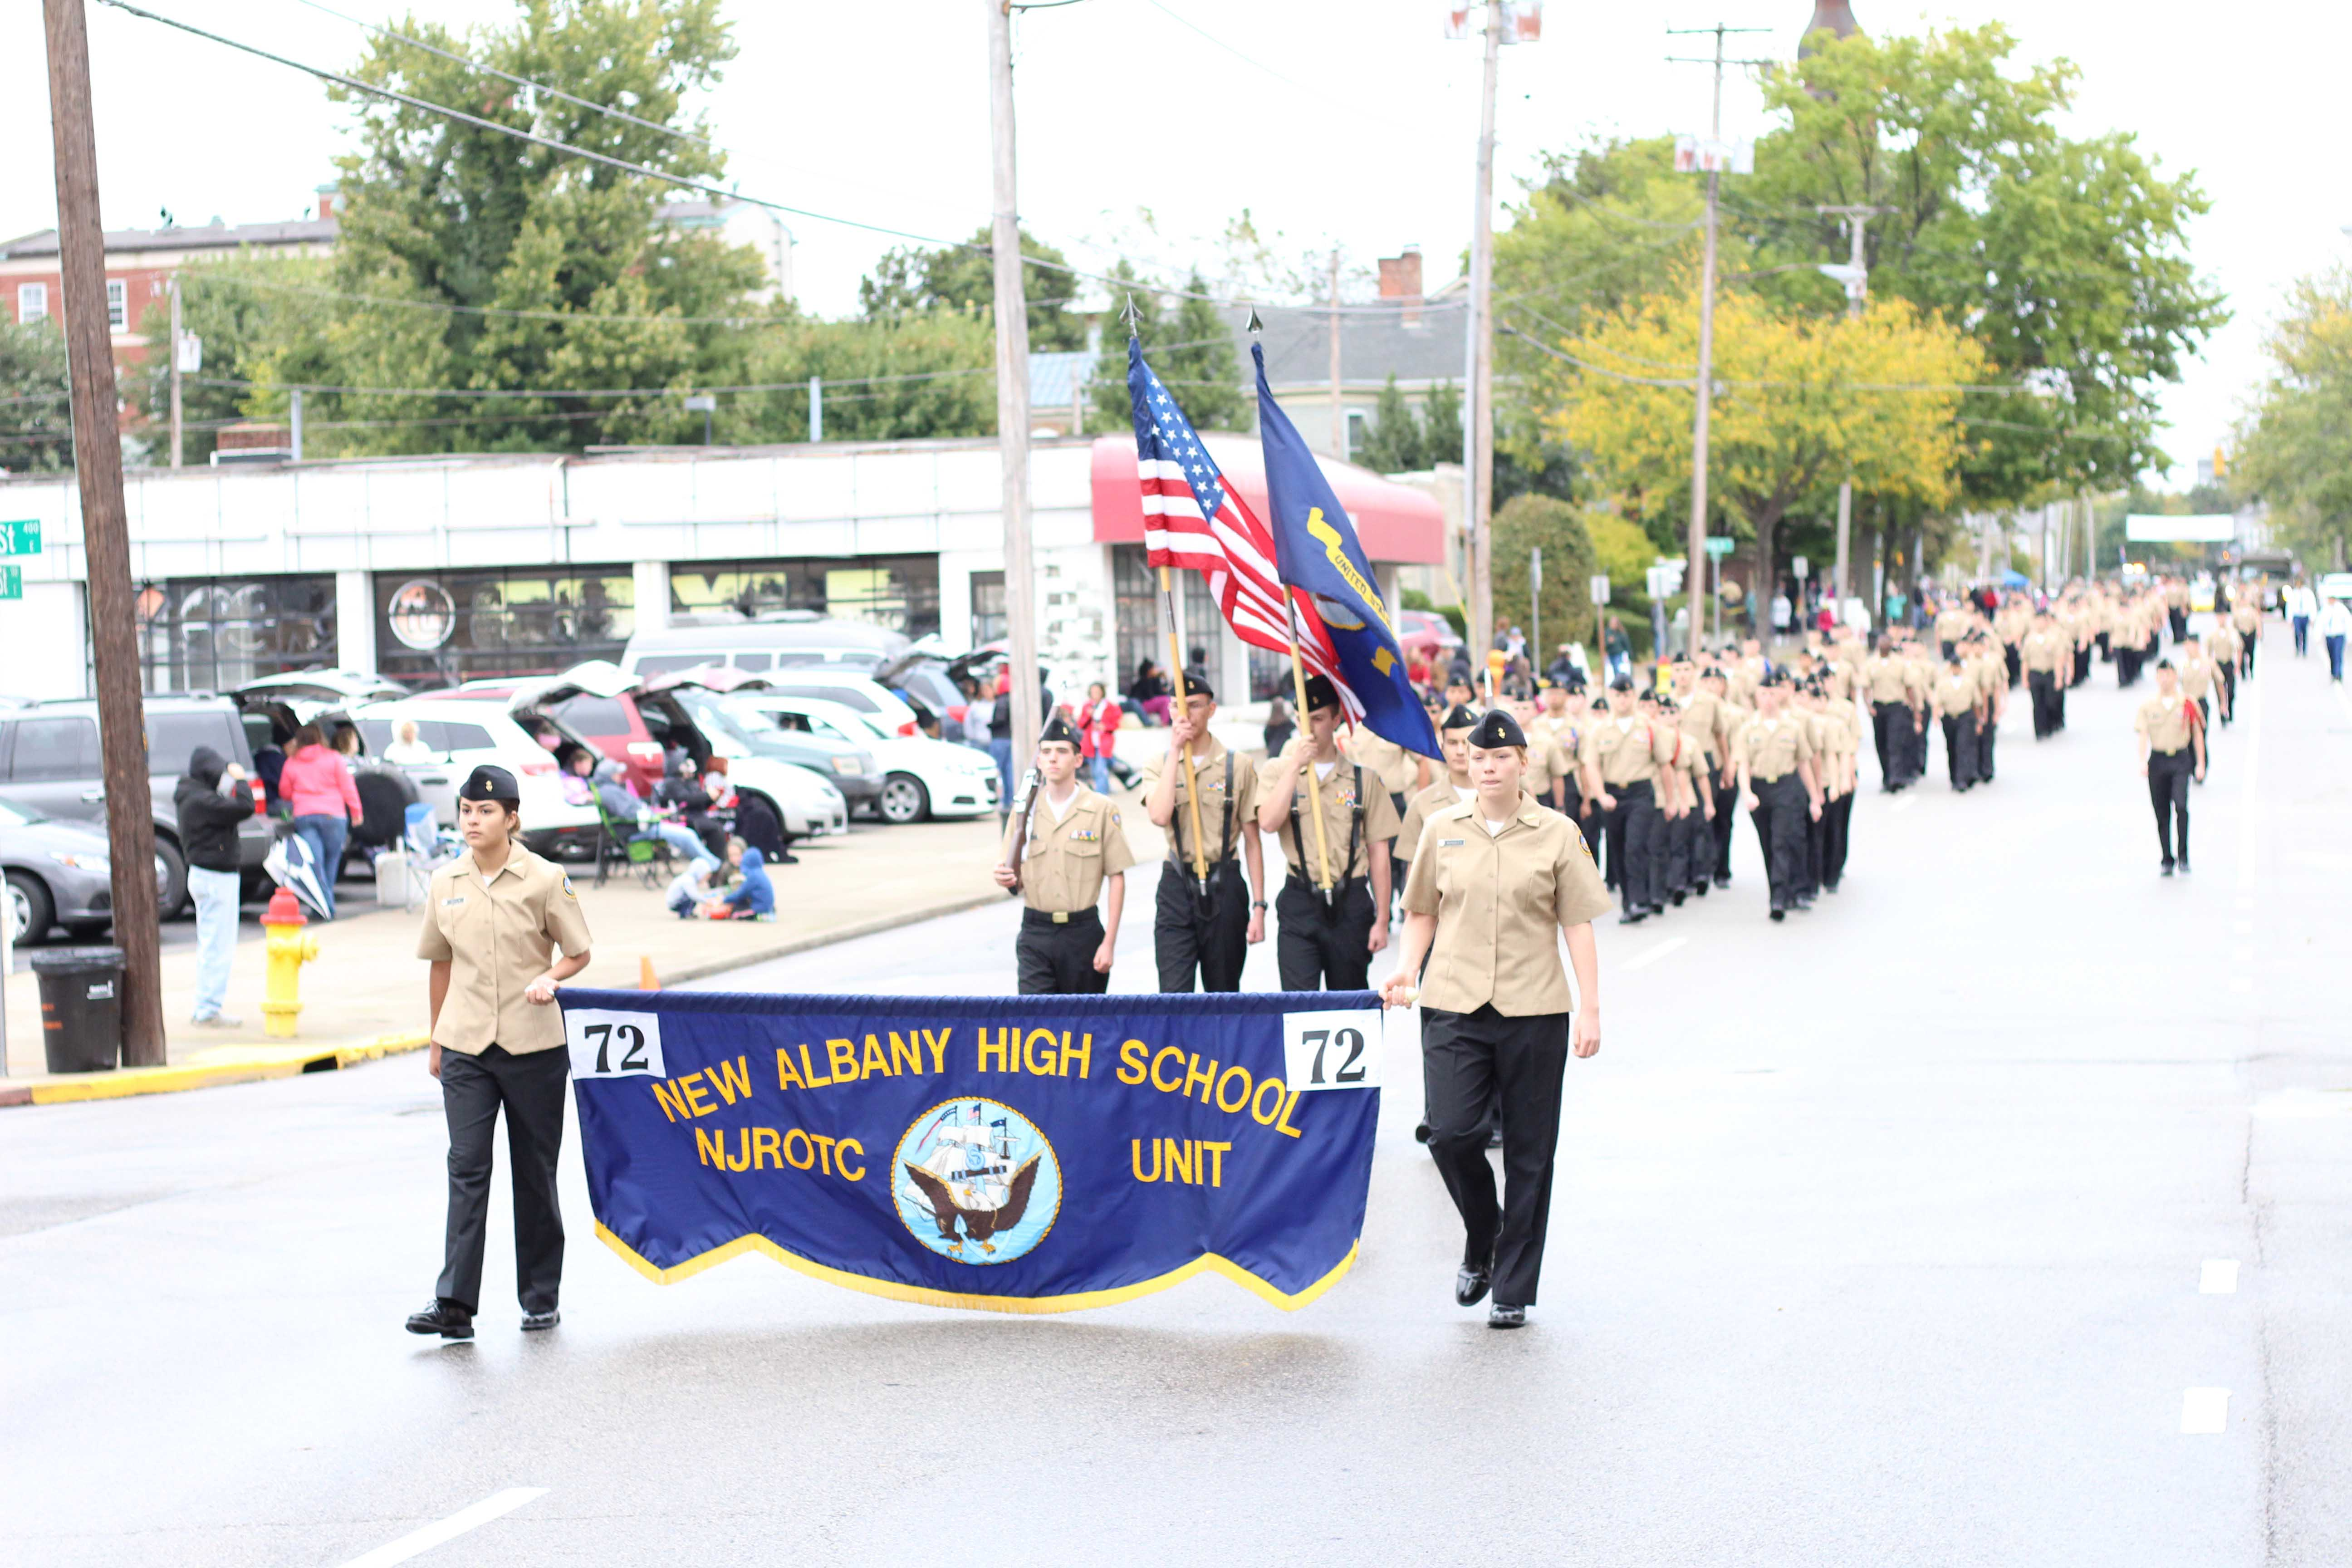 The+New+Albany+High+School%E2%80%99s+NJROTC+program+followed+the+program+at+Floyd+Central.+According+to+Master+Gunnery+Sergeant+Ackerman%2C+this+year%27s+NJROTC+class+has+about+100+students+participating+in+the+parade.+%0A